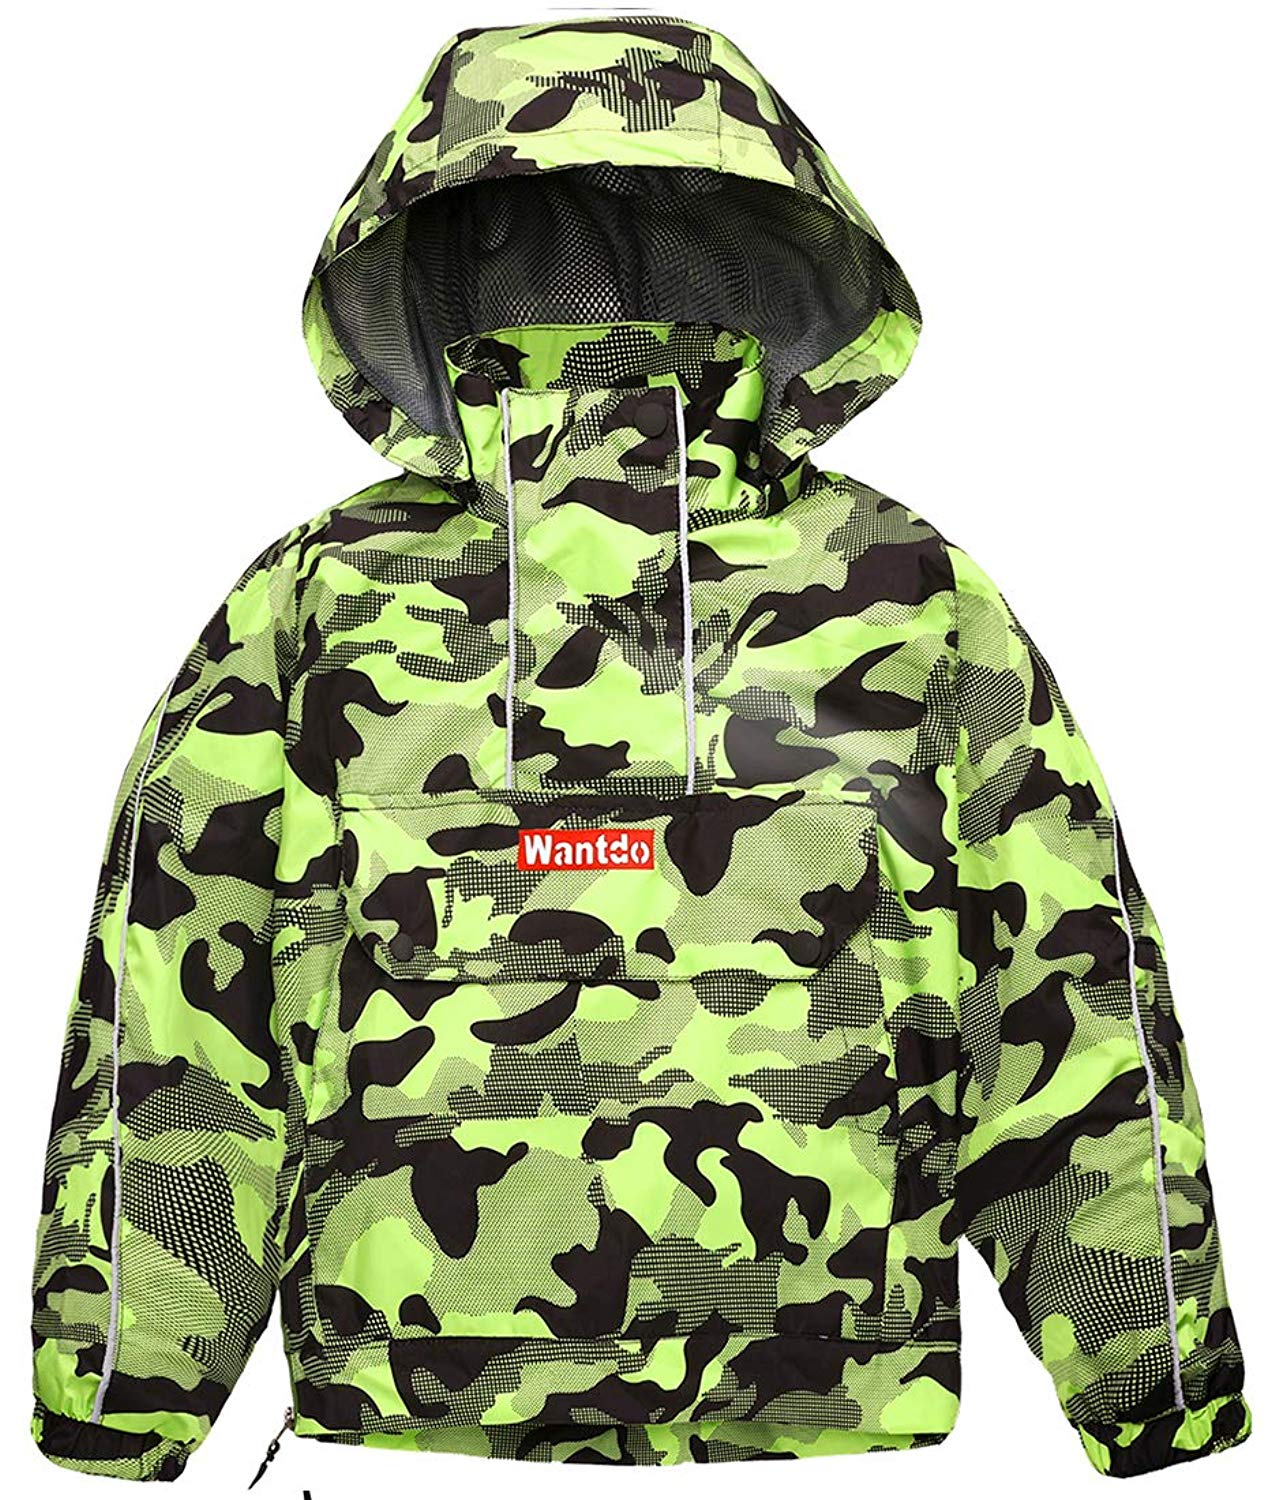 0f4a5dad8 Cheap Best Light Rain Jacket